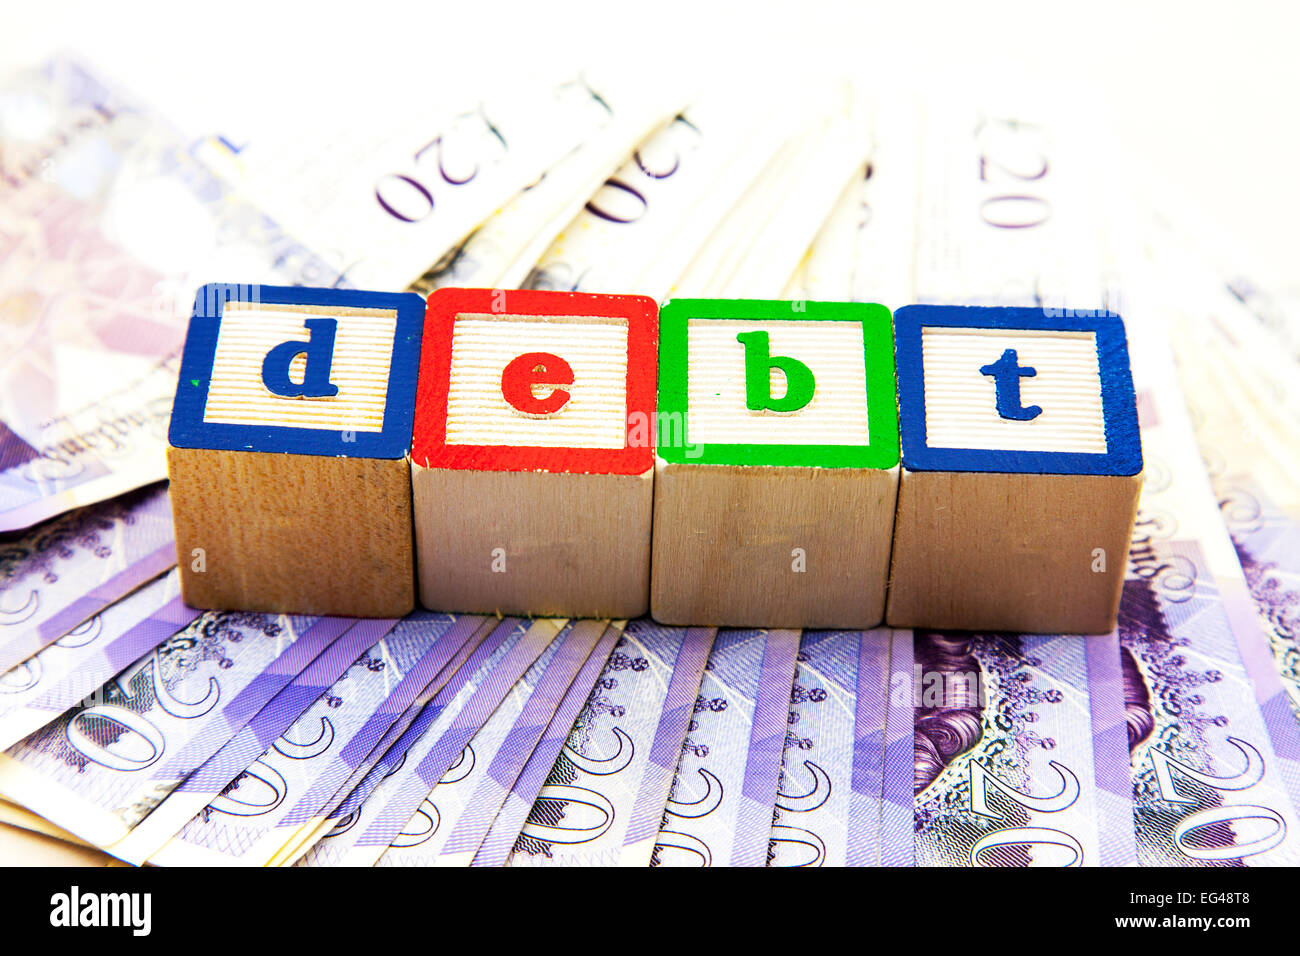 Debt rising cost costs money woes owe owing funding funds revenue income critical national  situation cut out copy - Stock Image